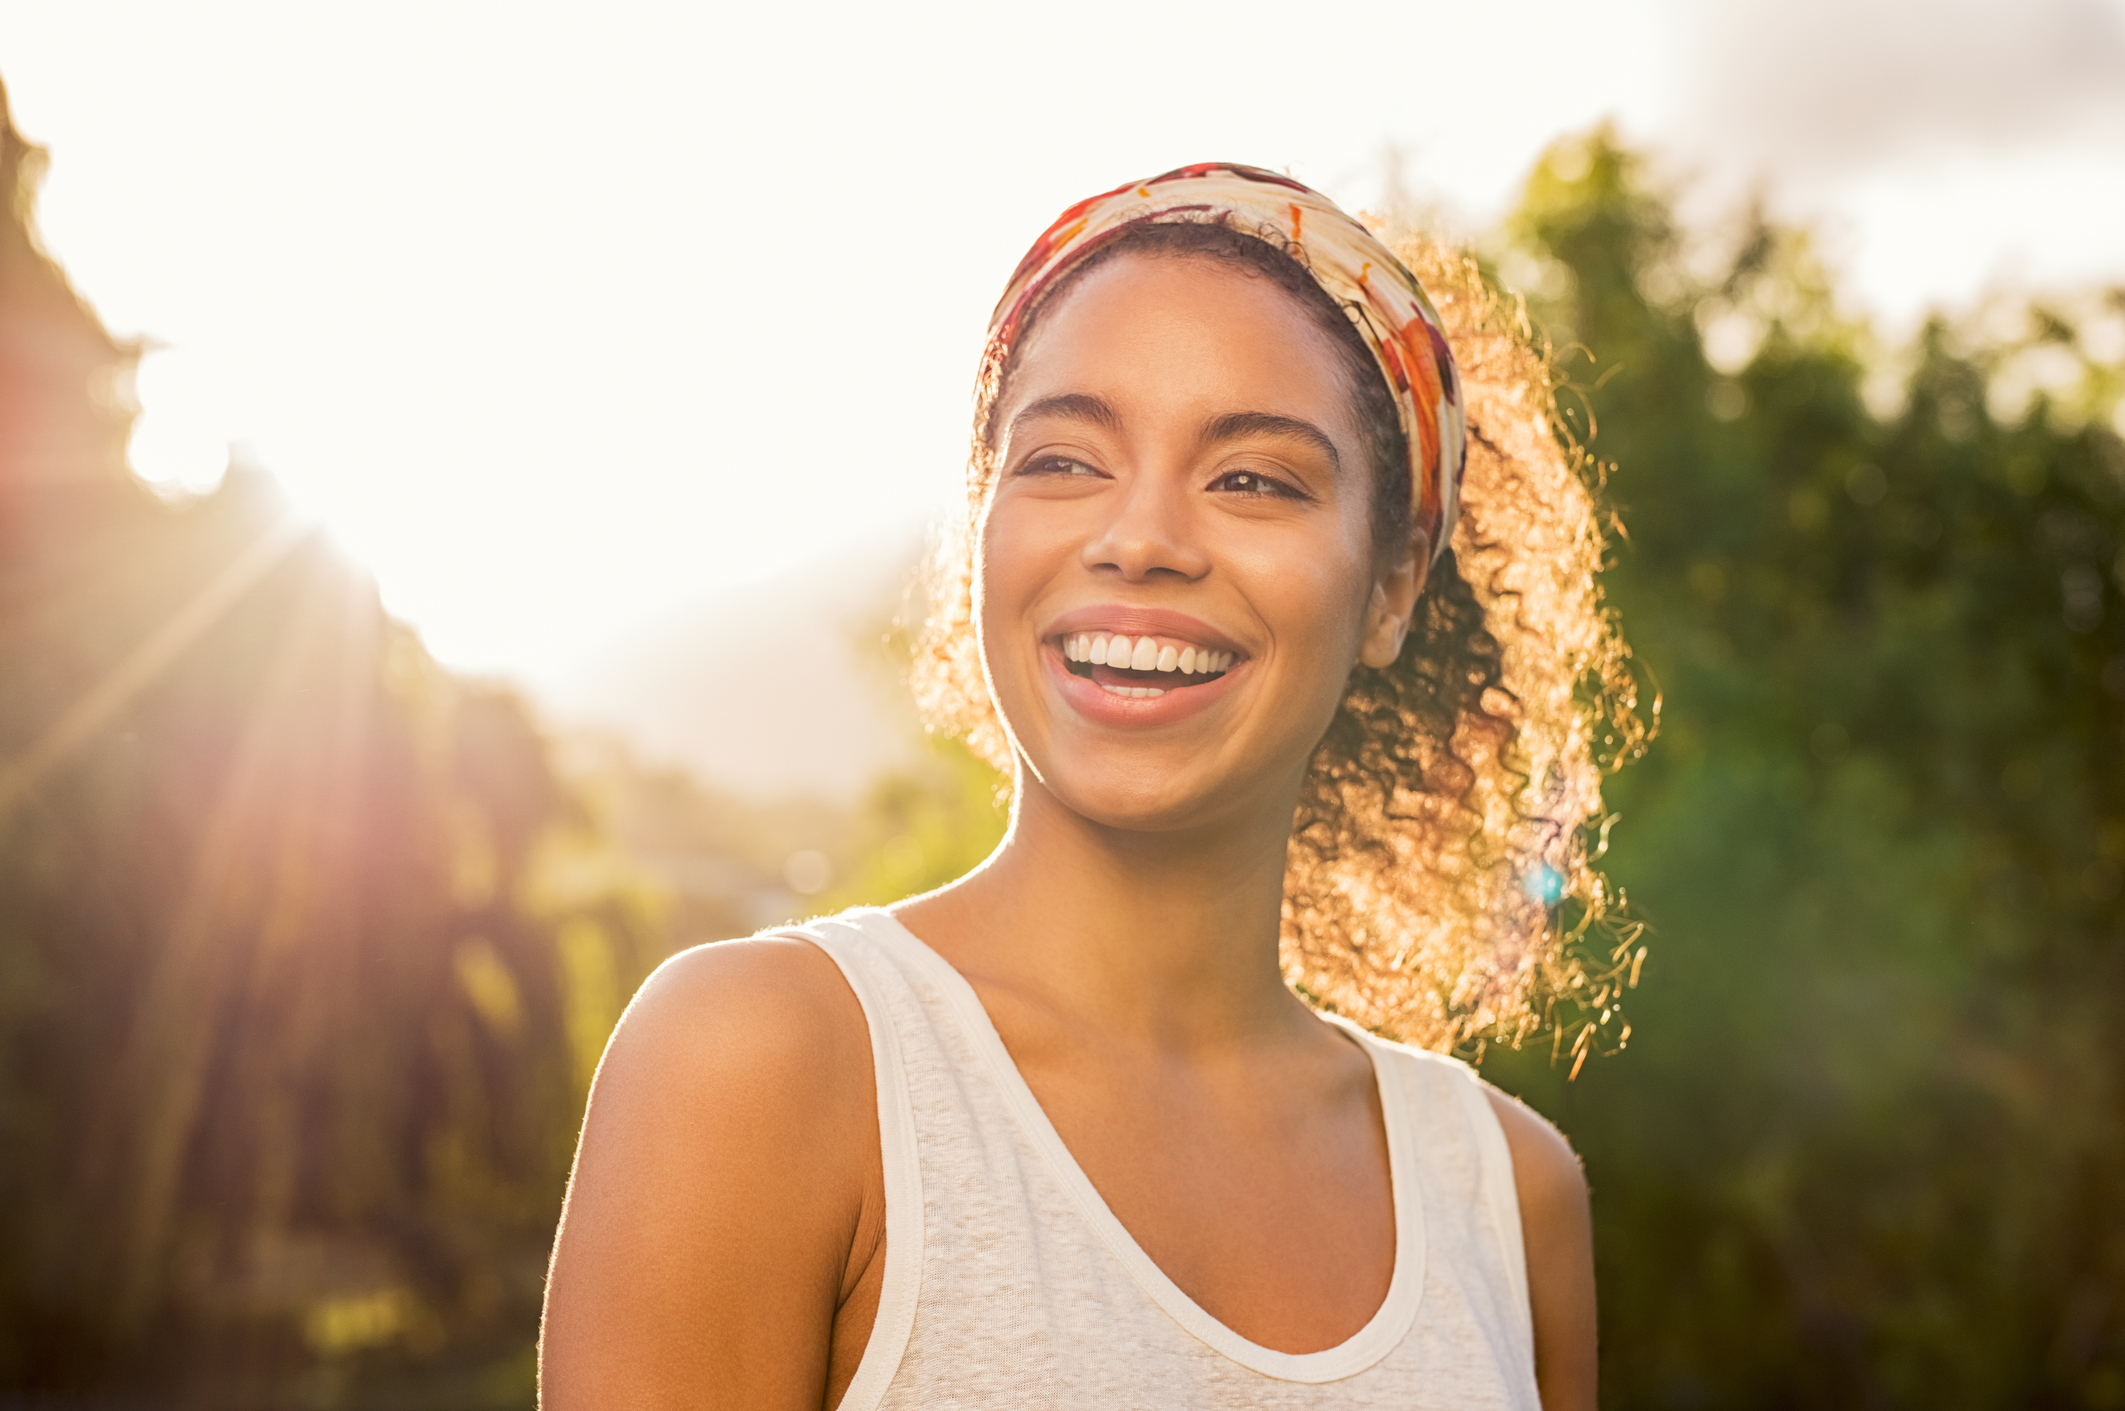 Mangat Plastic Surgery Institute and Skin Care Blog | Stay Safe during Skin Cancer Awareness Month (and All Year Round)